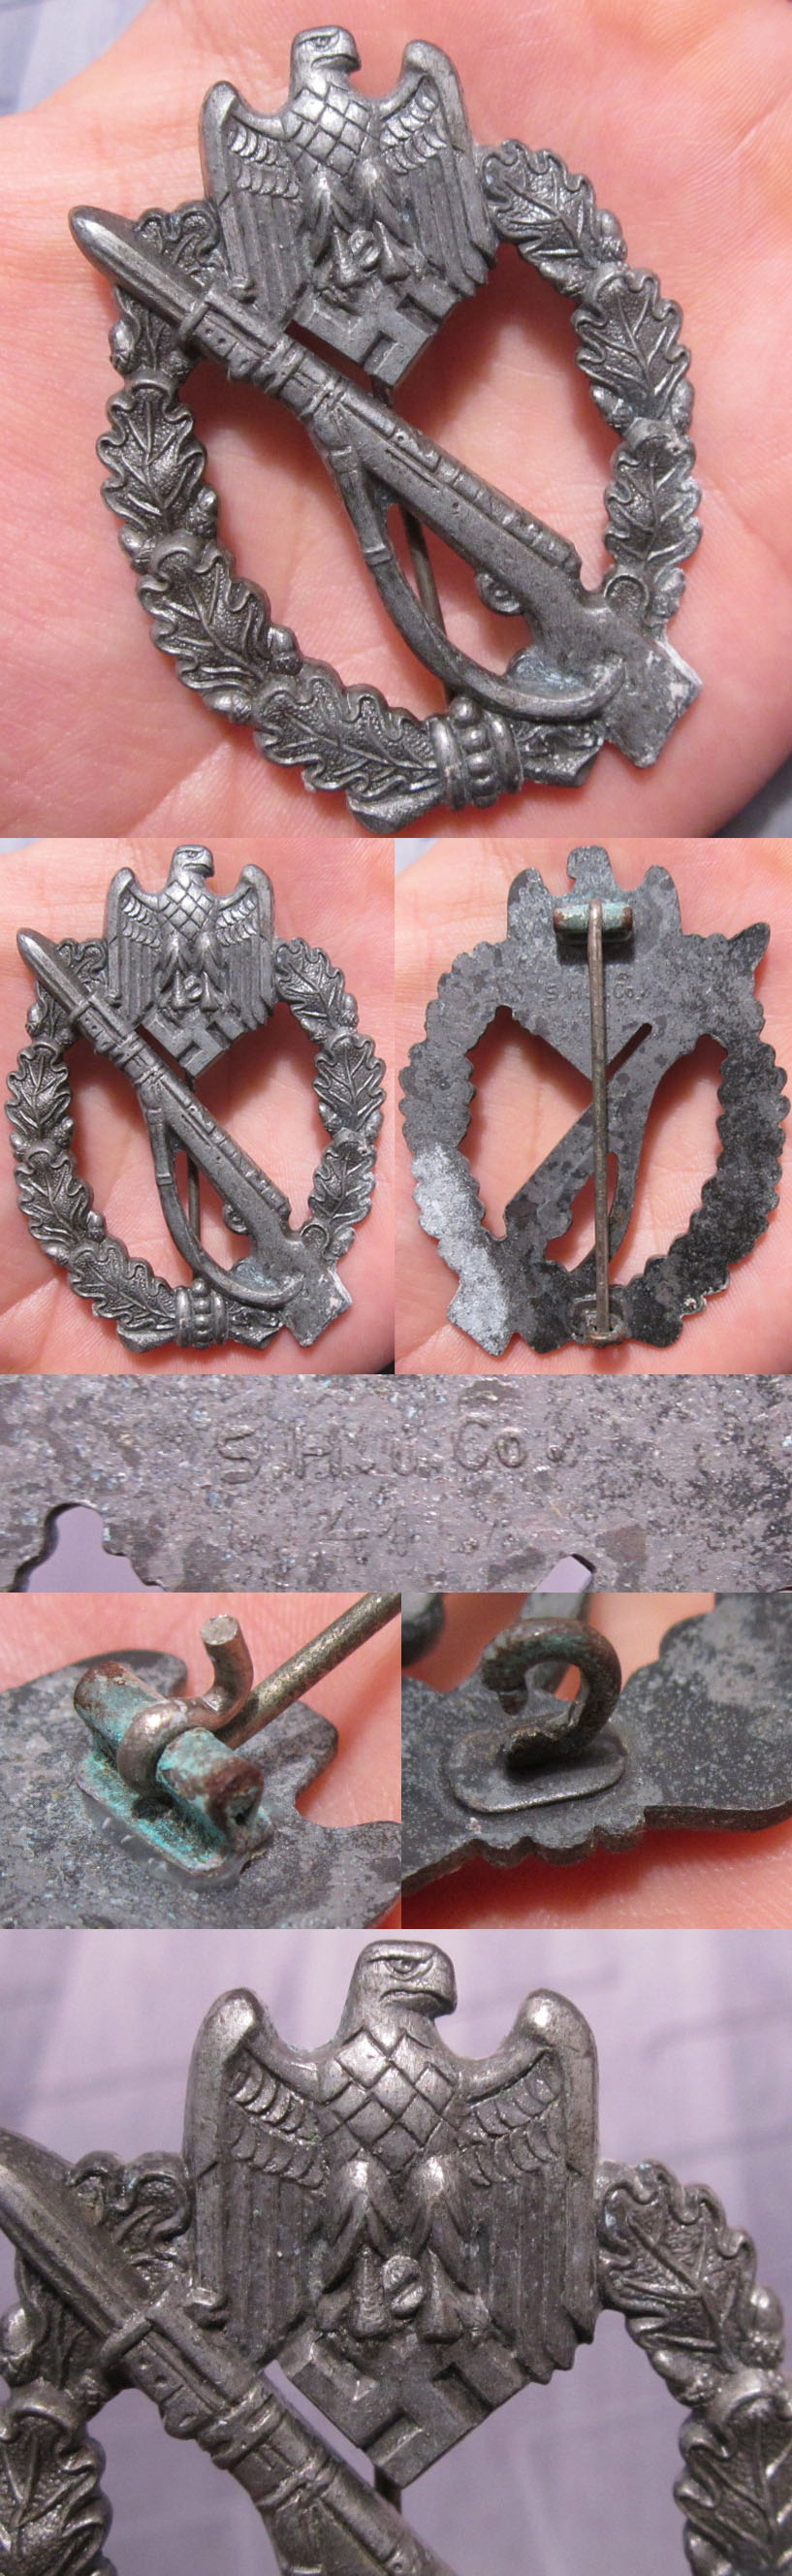 Silver Infantry Assault Badge by S.H.u. Co. 41